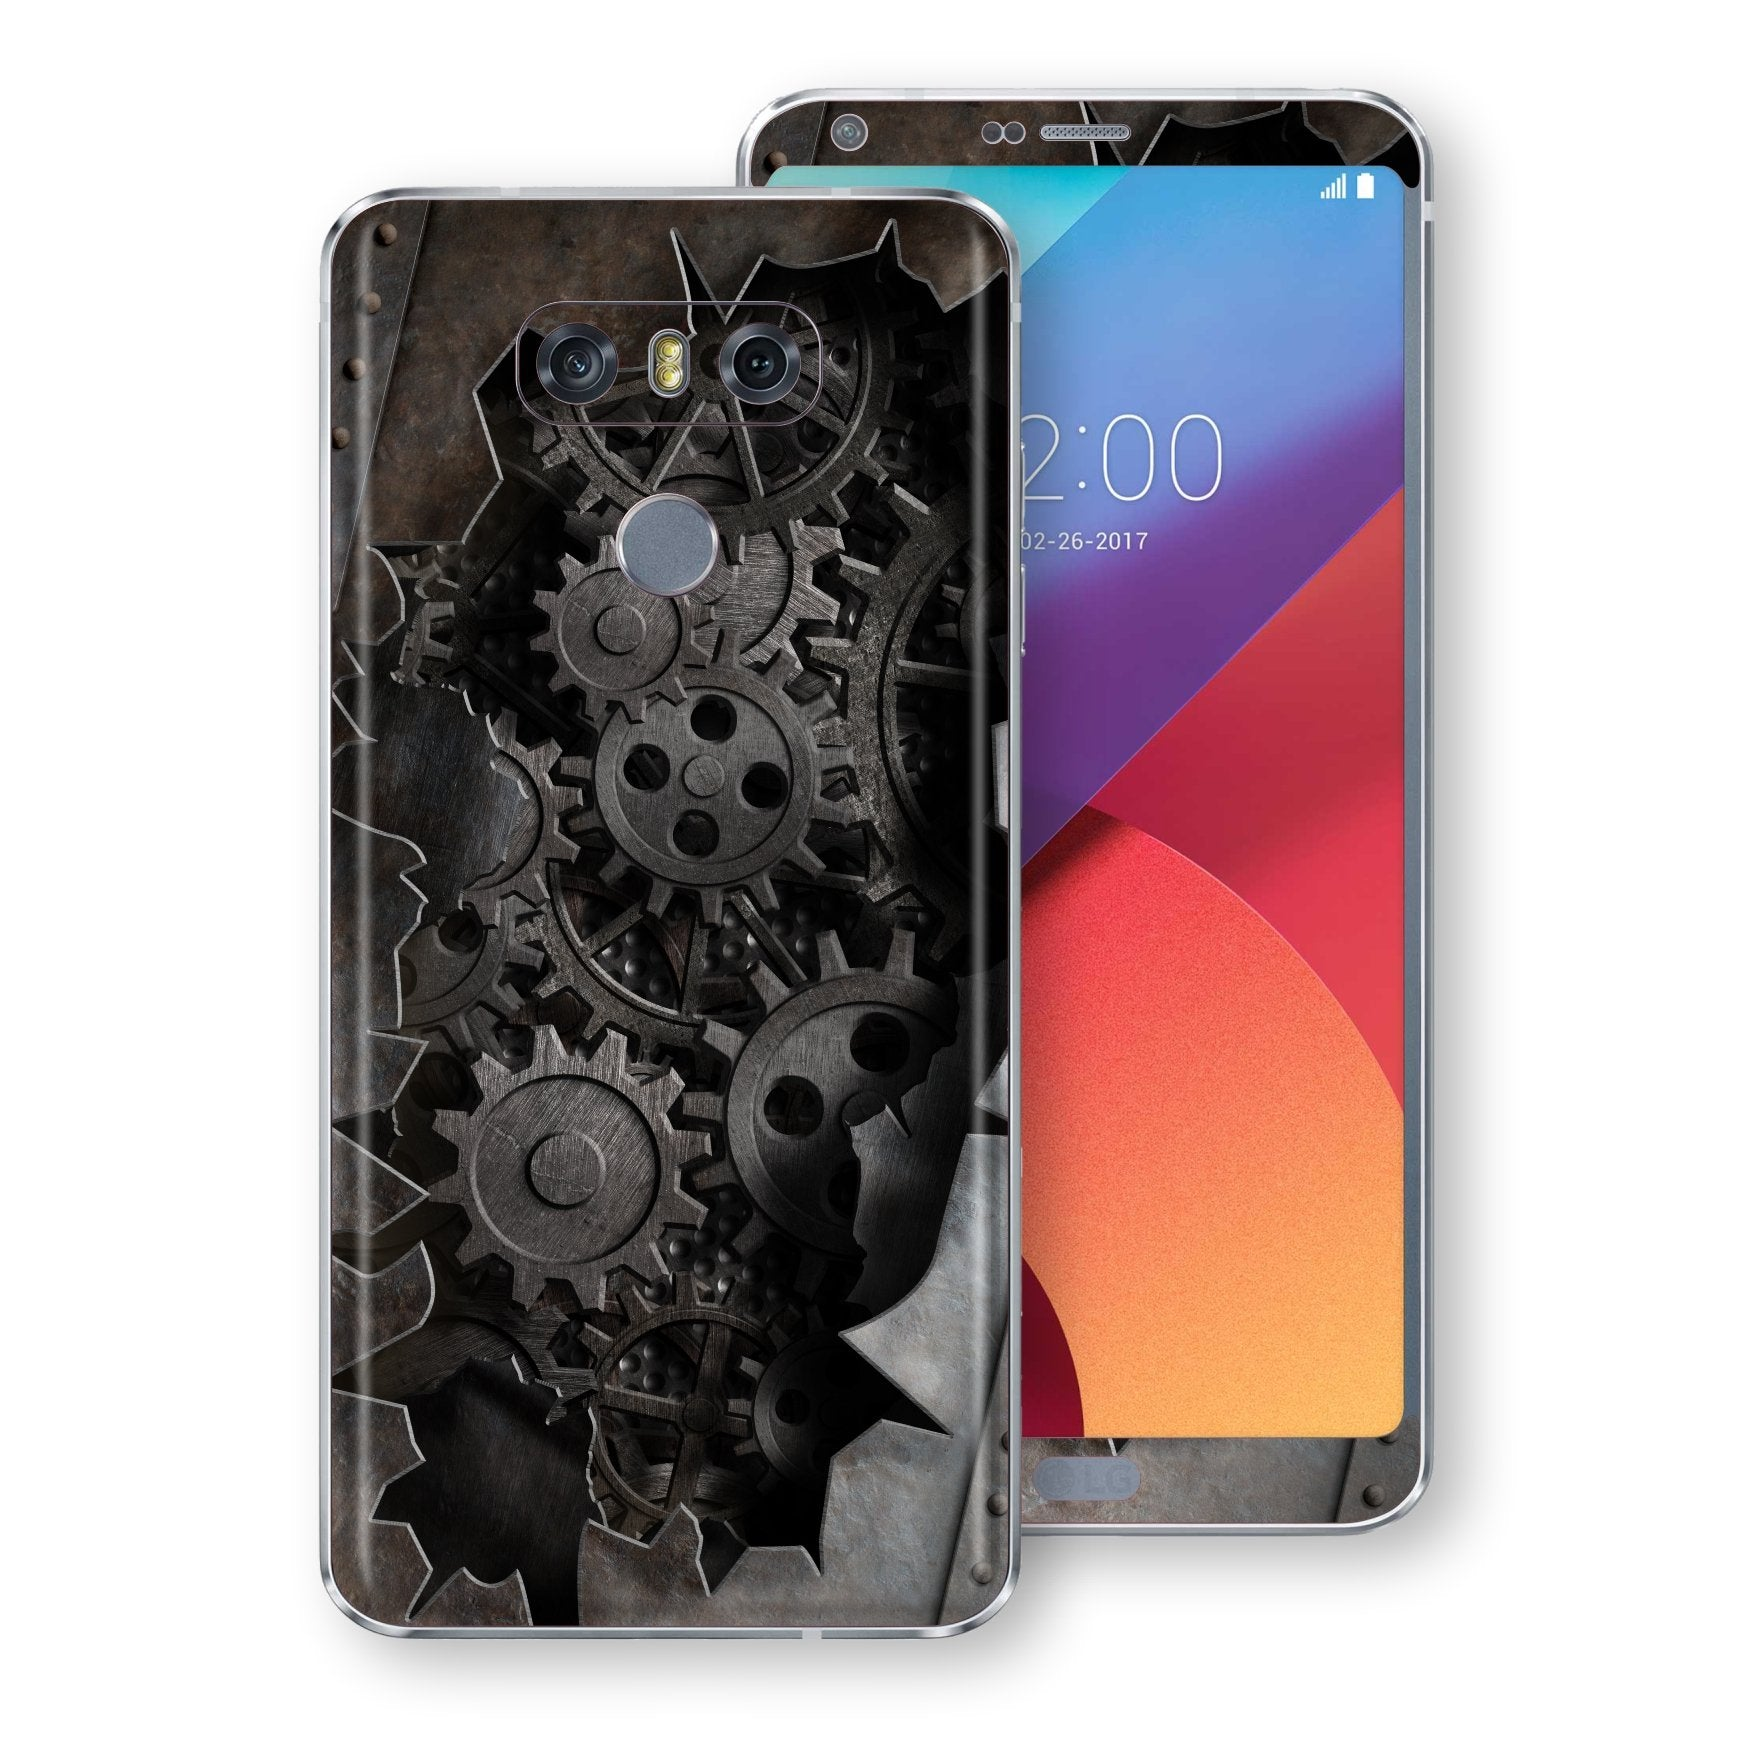 LG G6 Print Custom Signature 3D Old Machine Skin Wrap Decal by EasySkinz